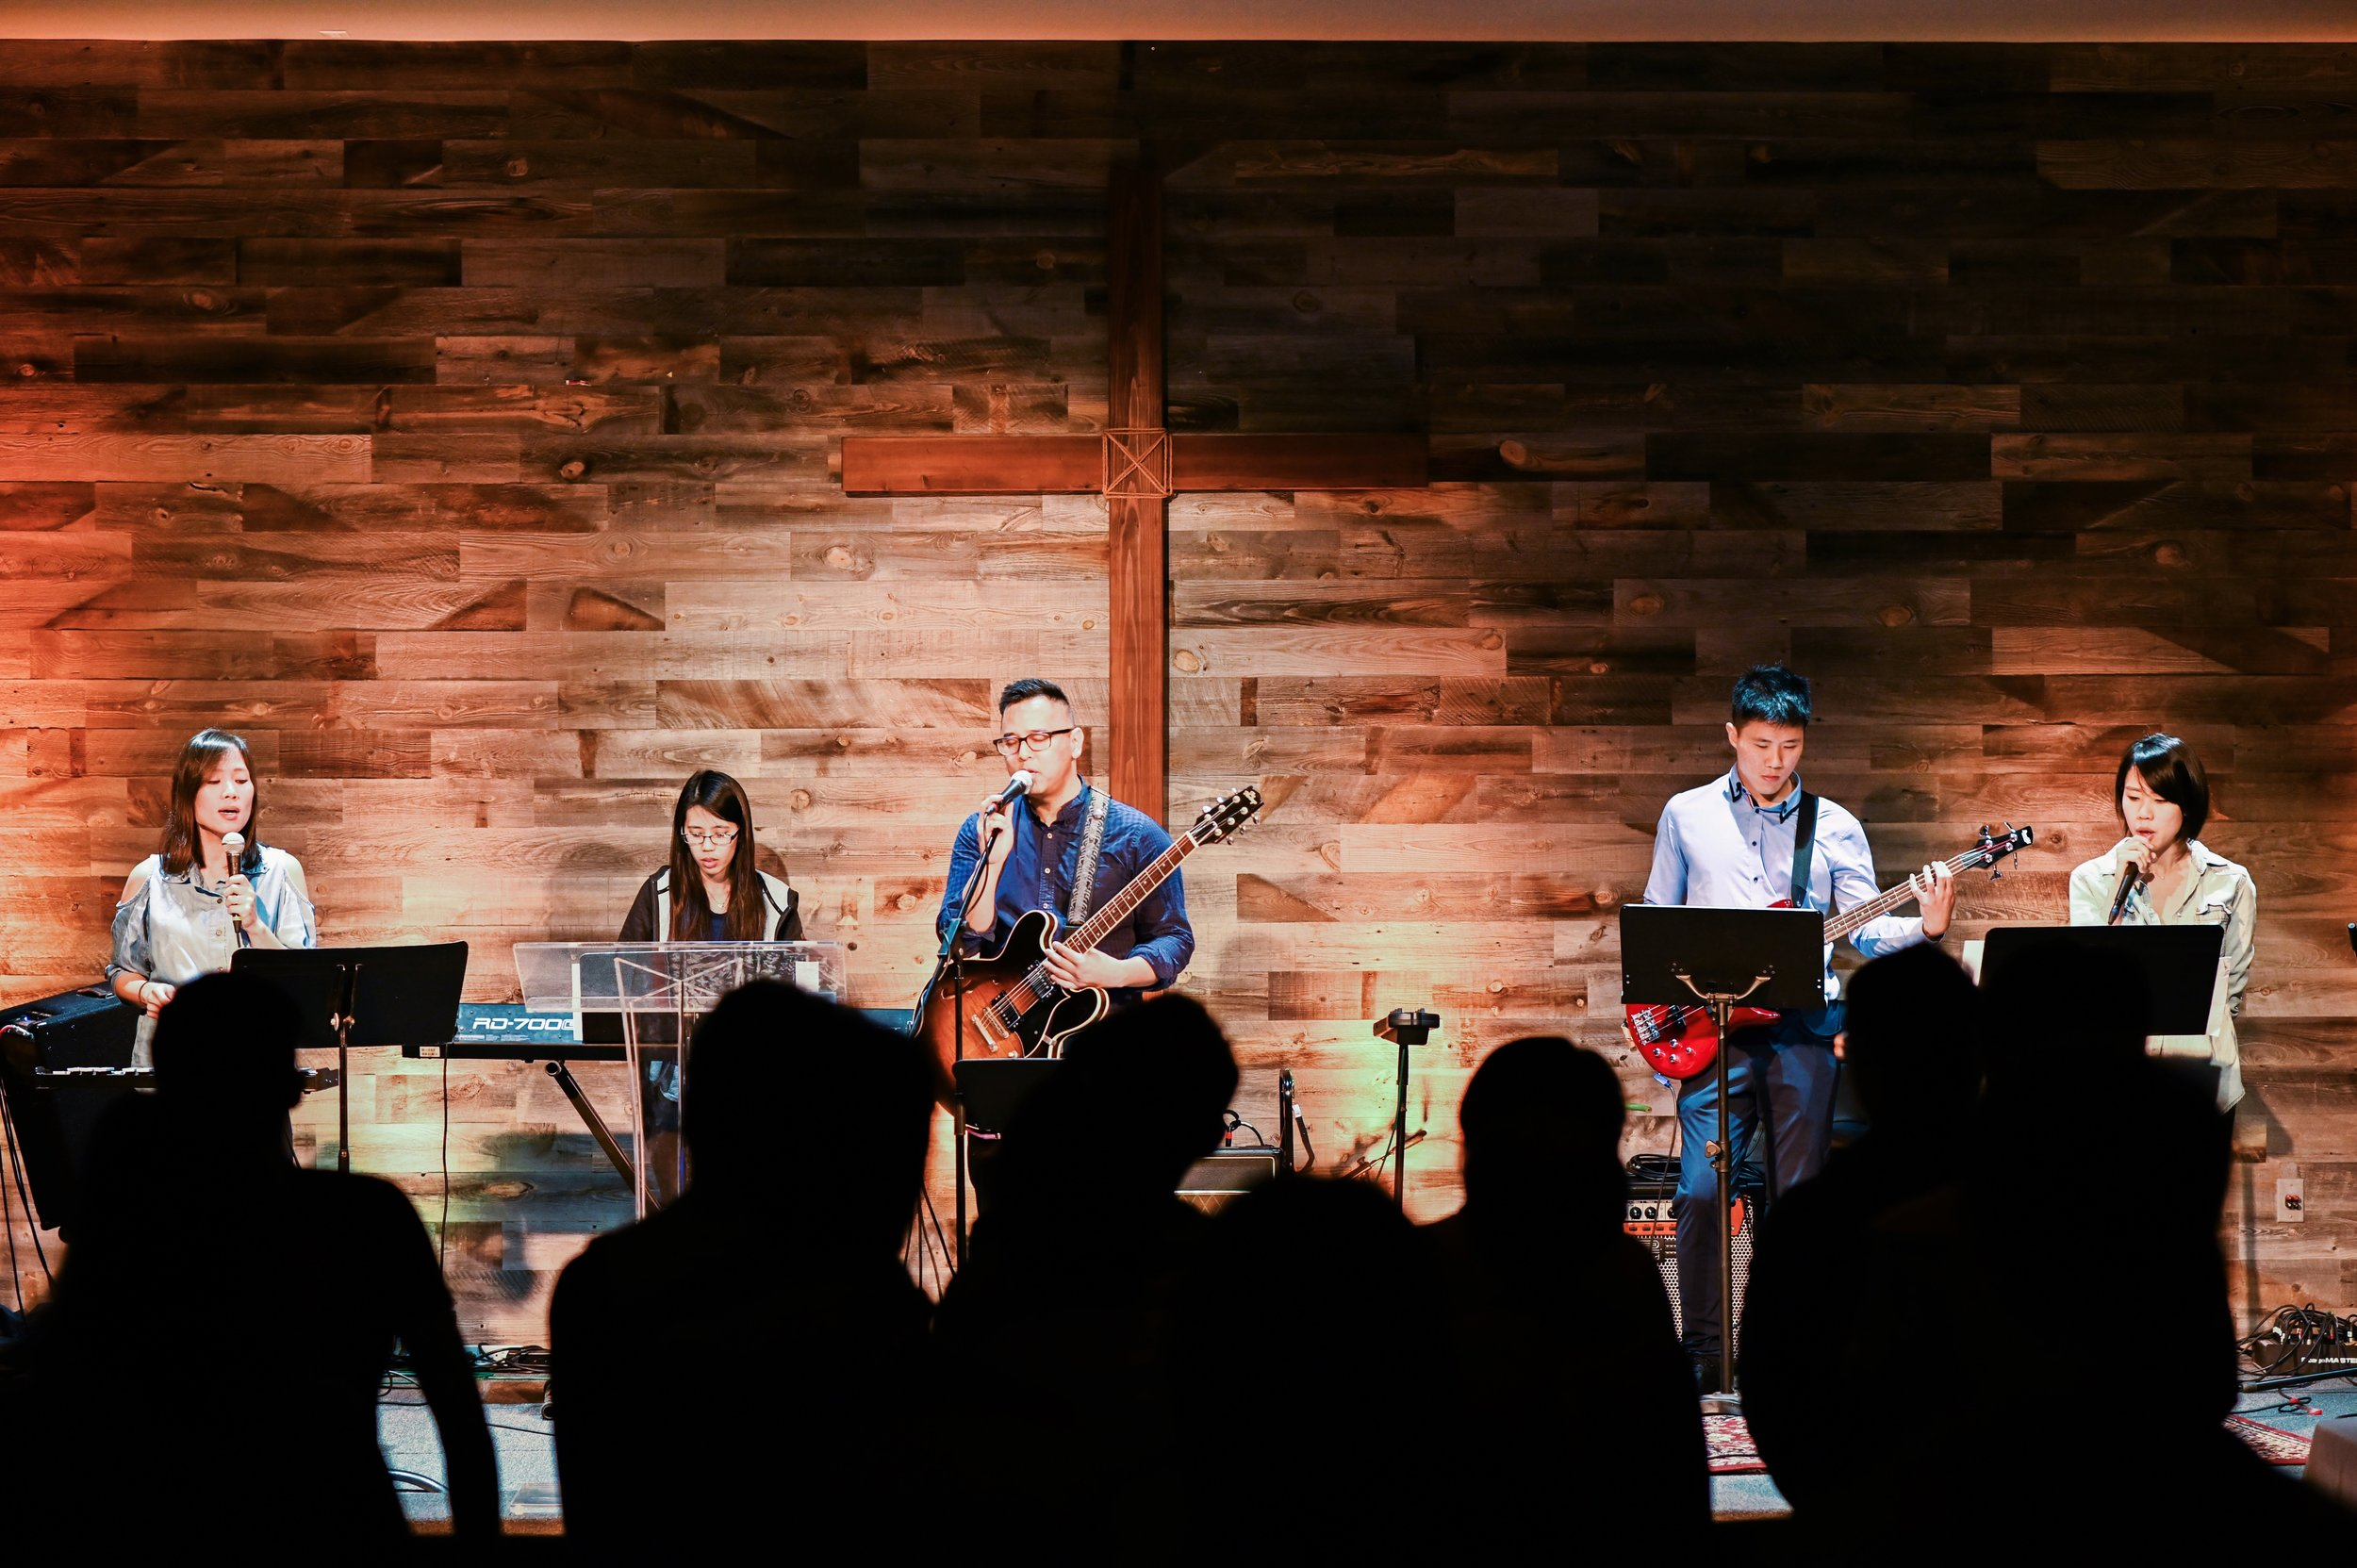 Our worship team did an awesome job today!